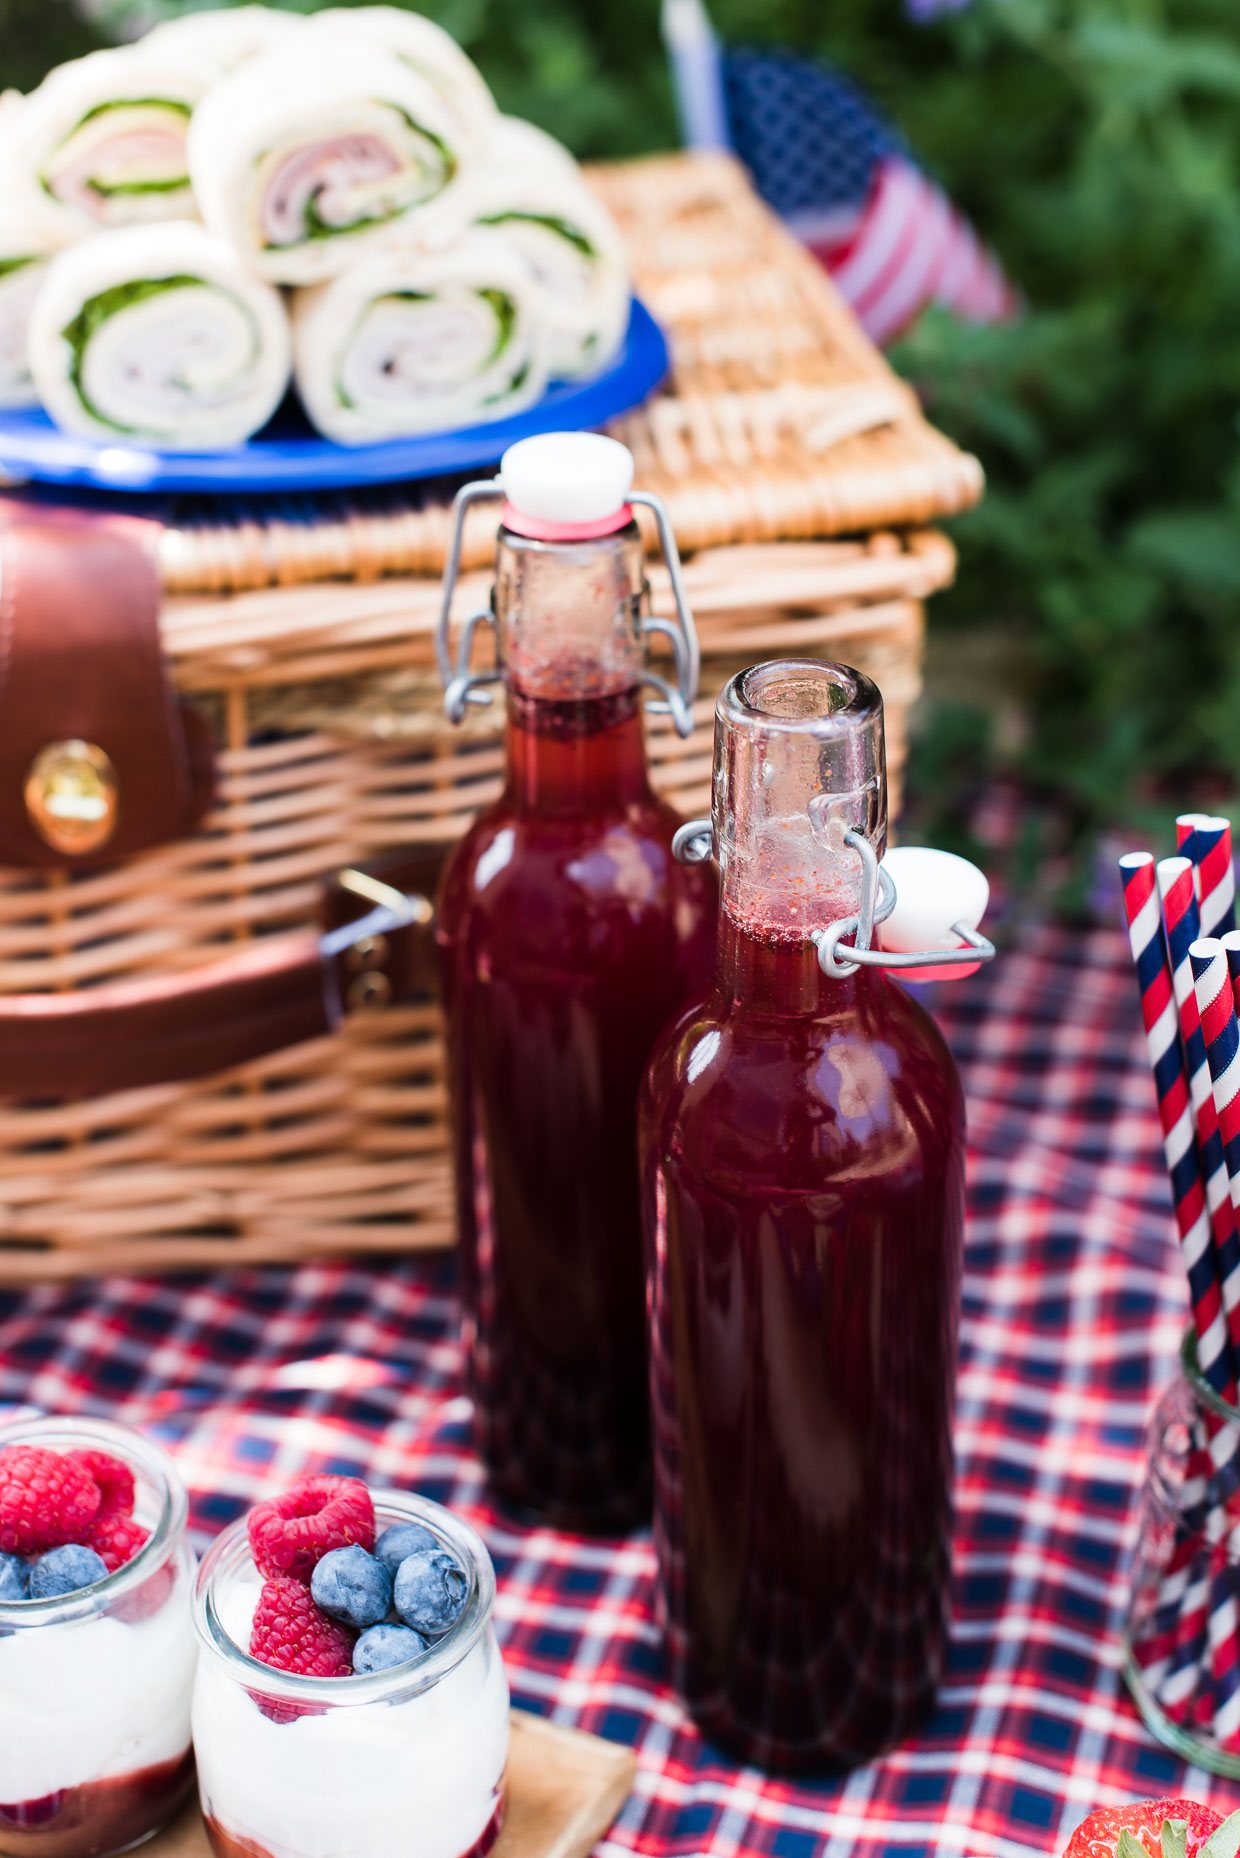 Blueberry Ginger-Basil Soda at a red white and blue picnic.